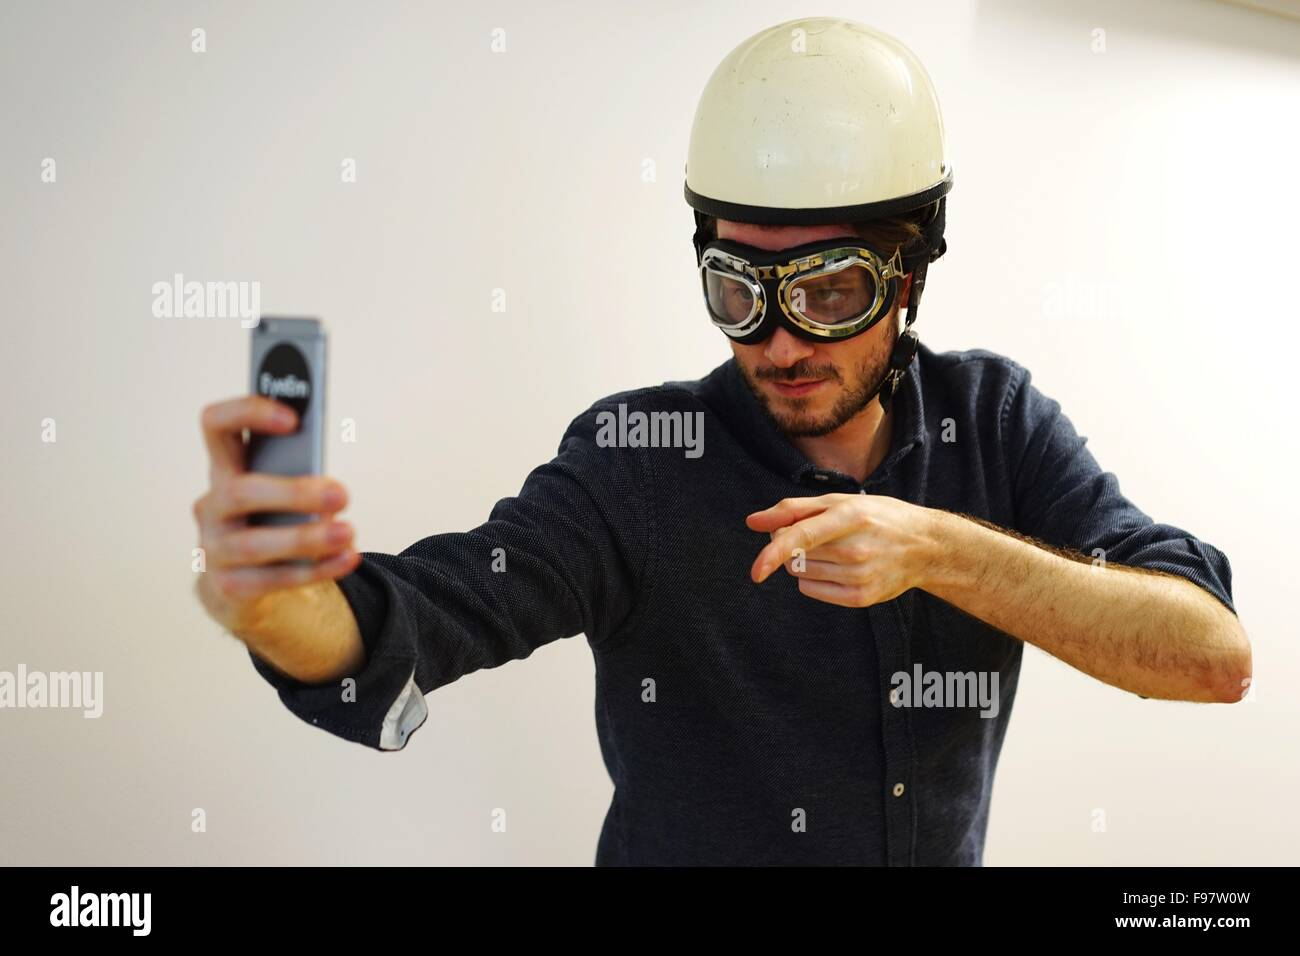 Young Man In Aviator Glasses And Helmet Taking Selfie Against White Wall - Stock Image